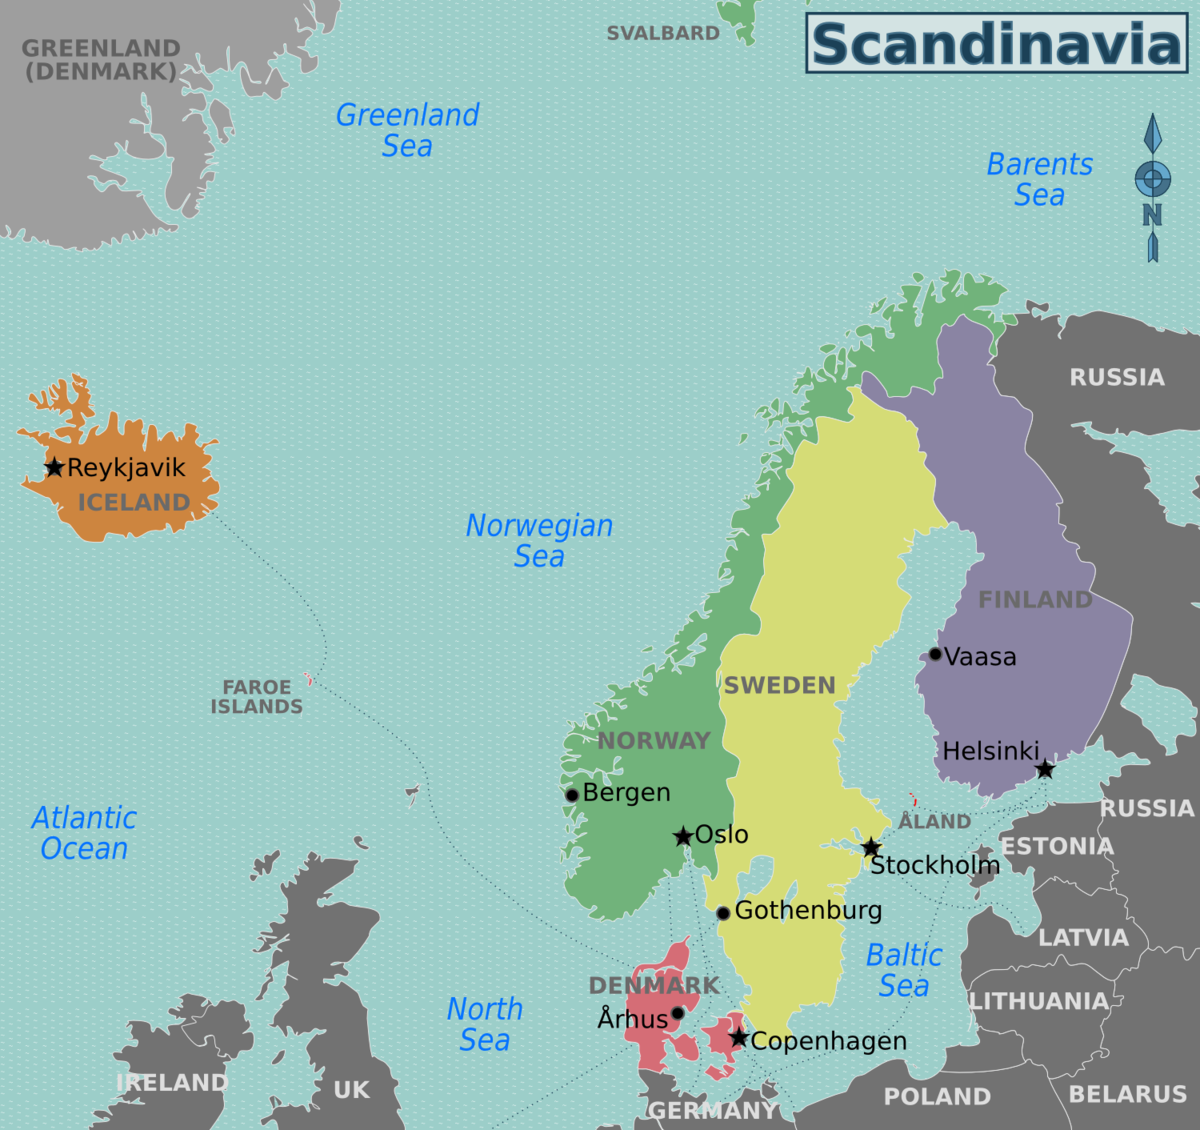 Nordic Countries Travel Guide At Wikivoyage Scandinavia Nordic Countries Finland